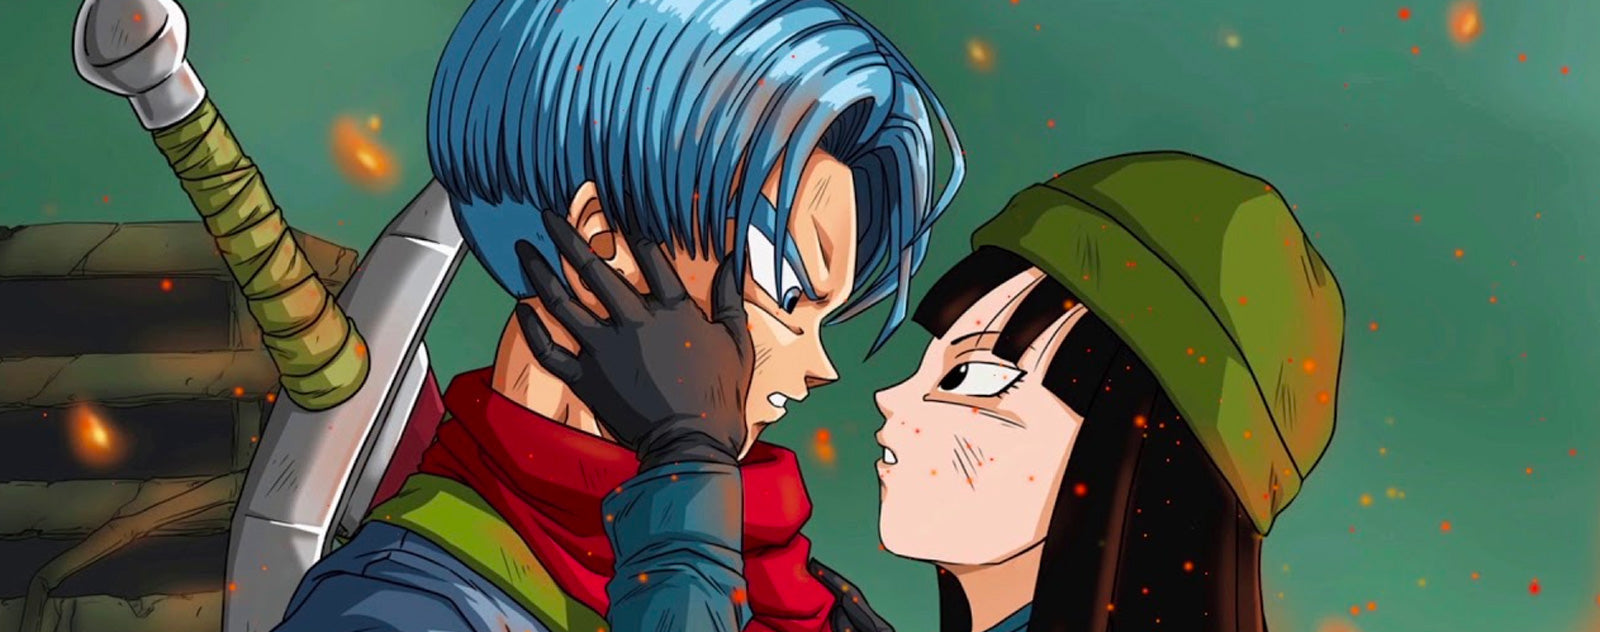 Trunks et Mai